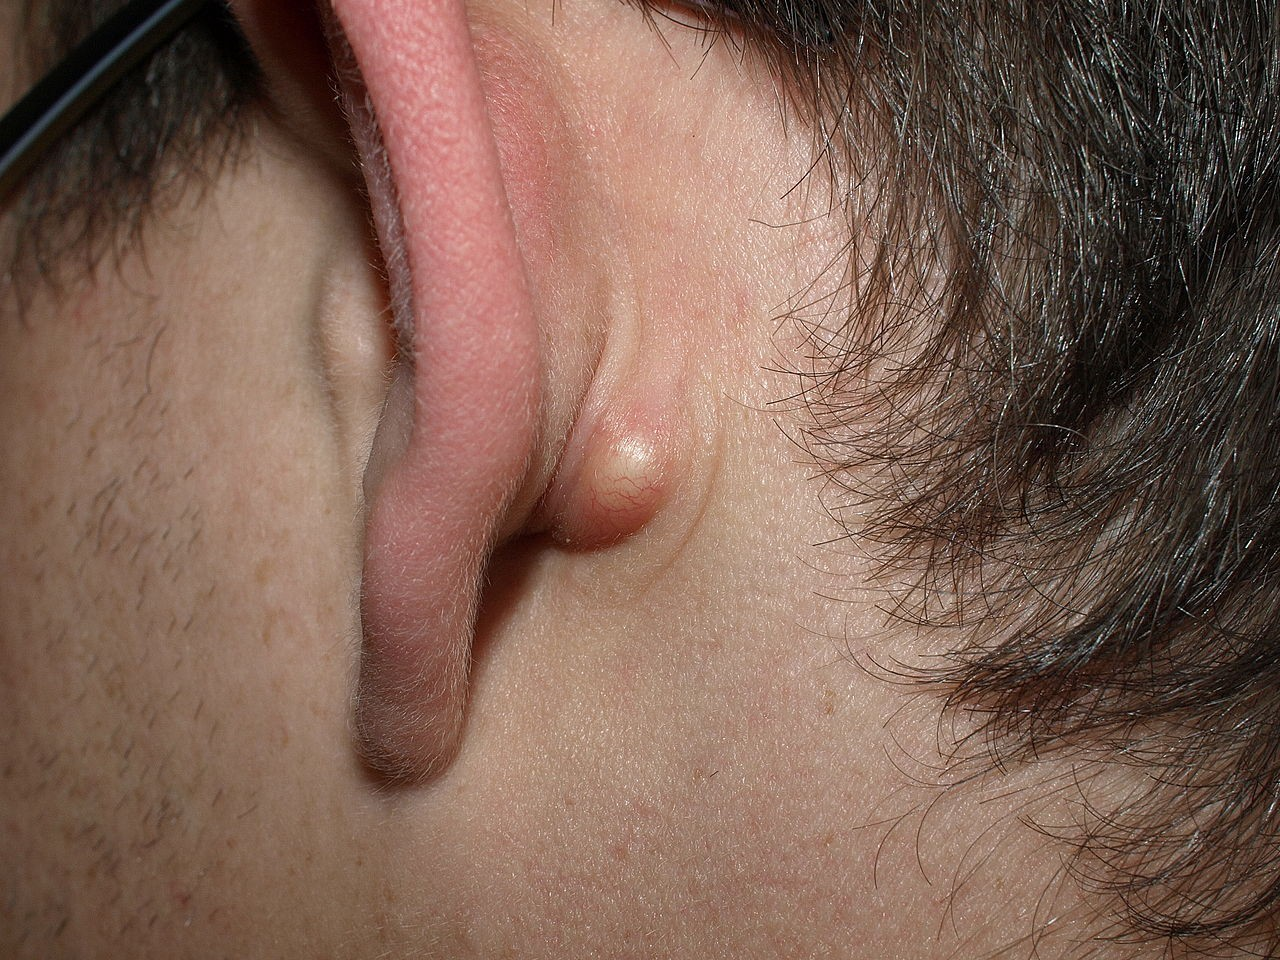 How To Get Rid Of Sebaceous Cyst With Fast And Effective Surgical